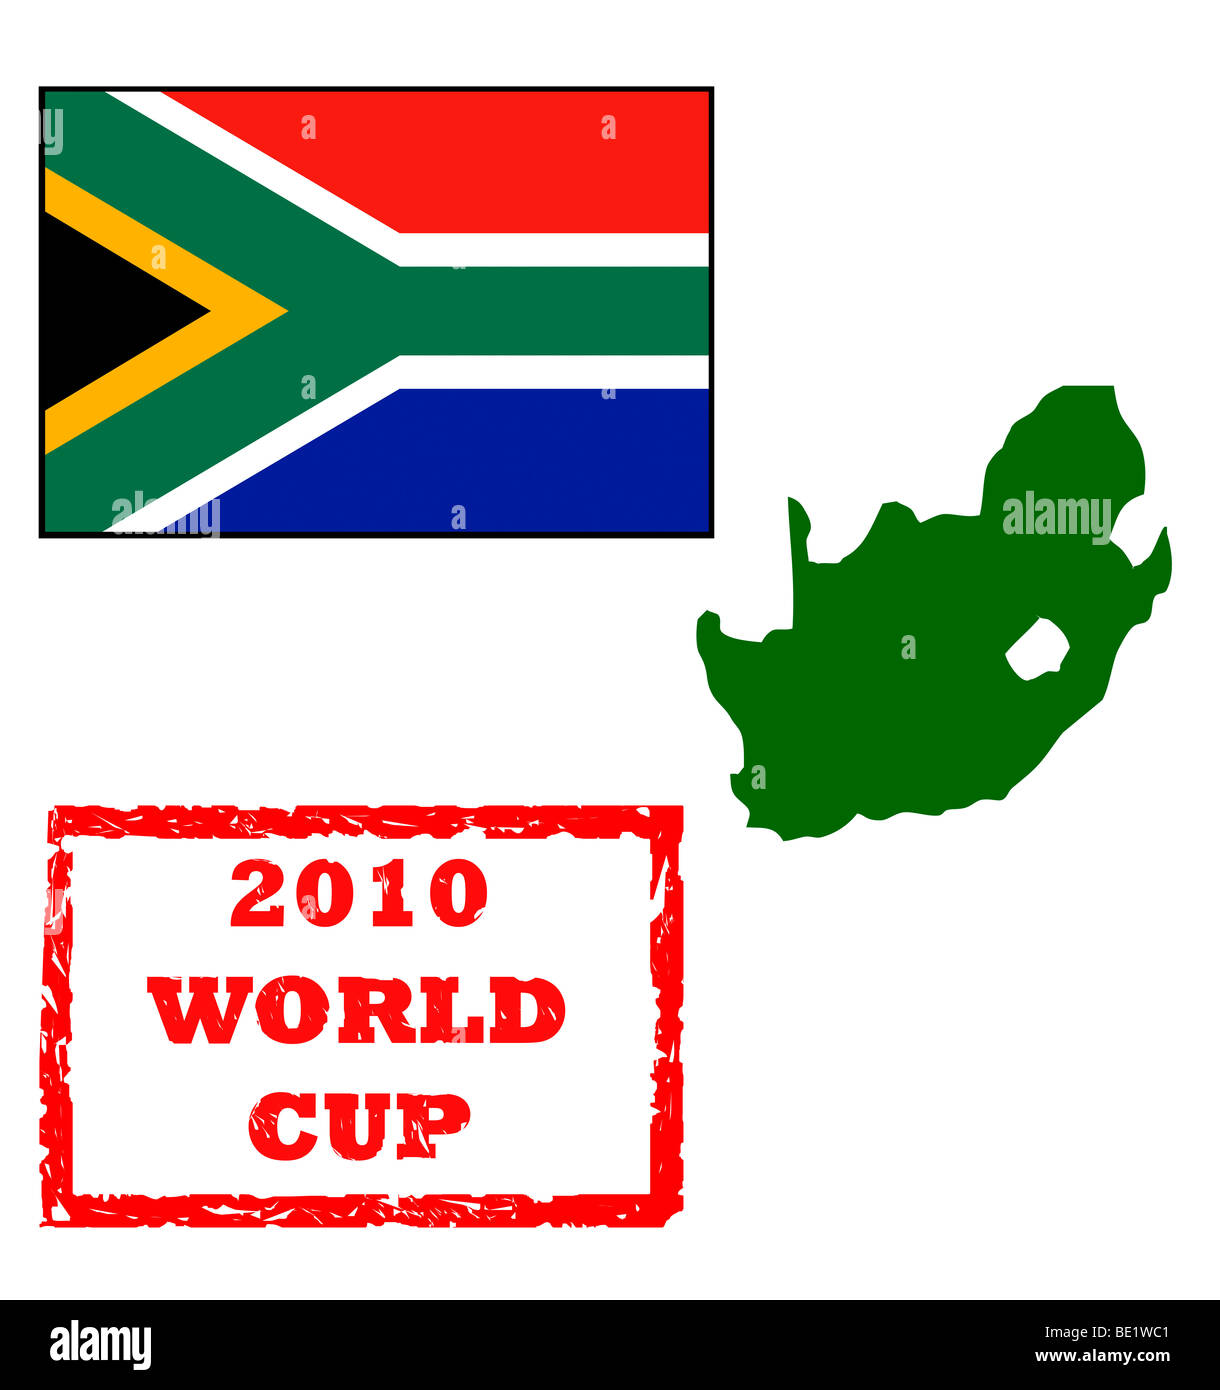 Map Of Africa 2010.Graphic Elements For 2010 World Cup Passport Stamp South Africa